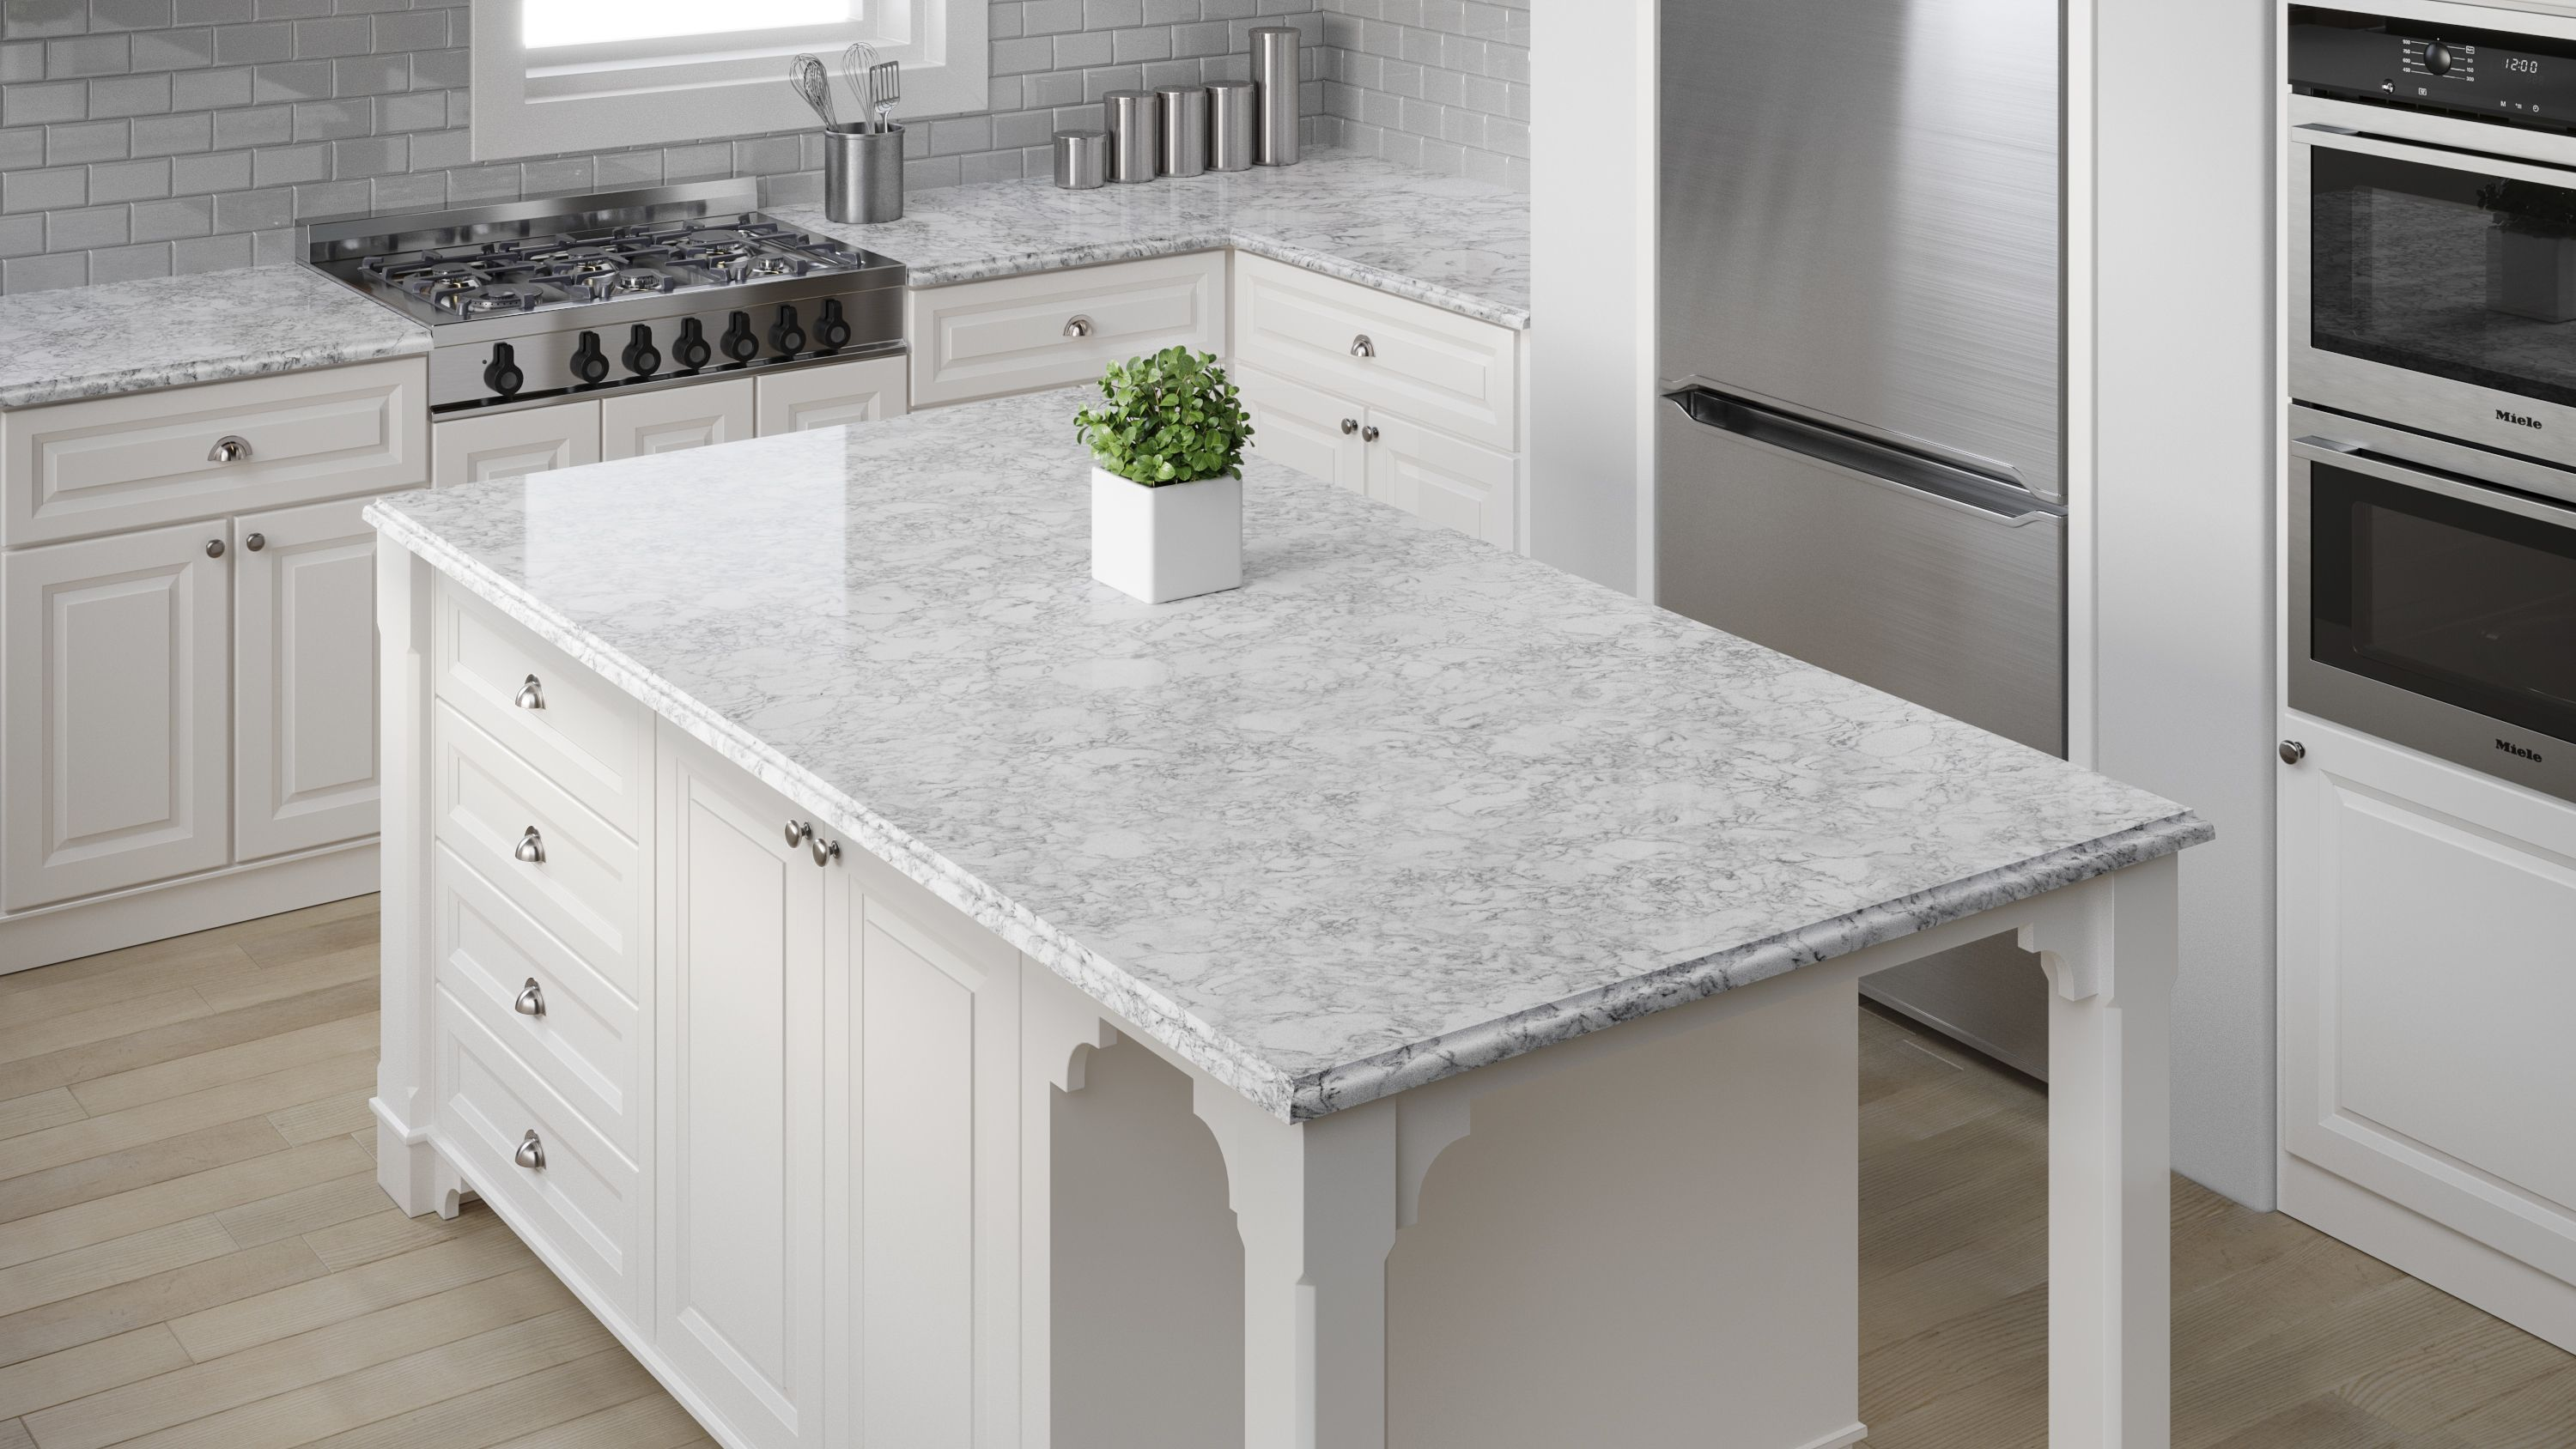 Allen And Roth Countertops Quartz Done In Oyster Cotton Is A Beautiful Color From The